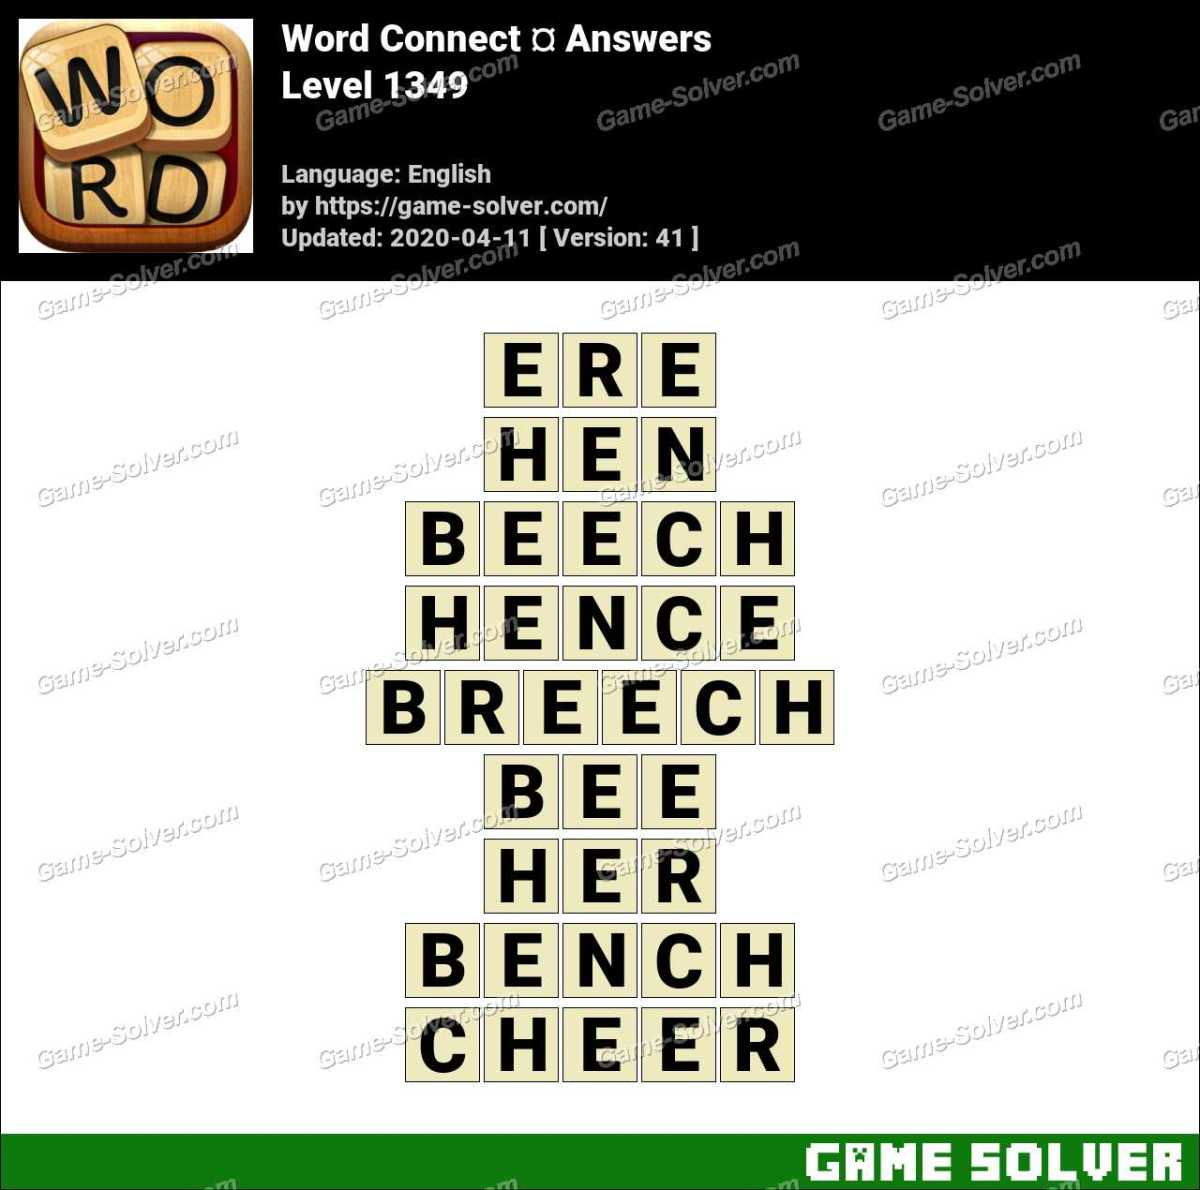 Word Connect Level 1349 Answers